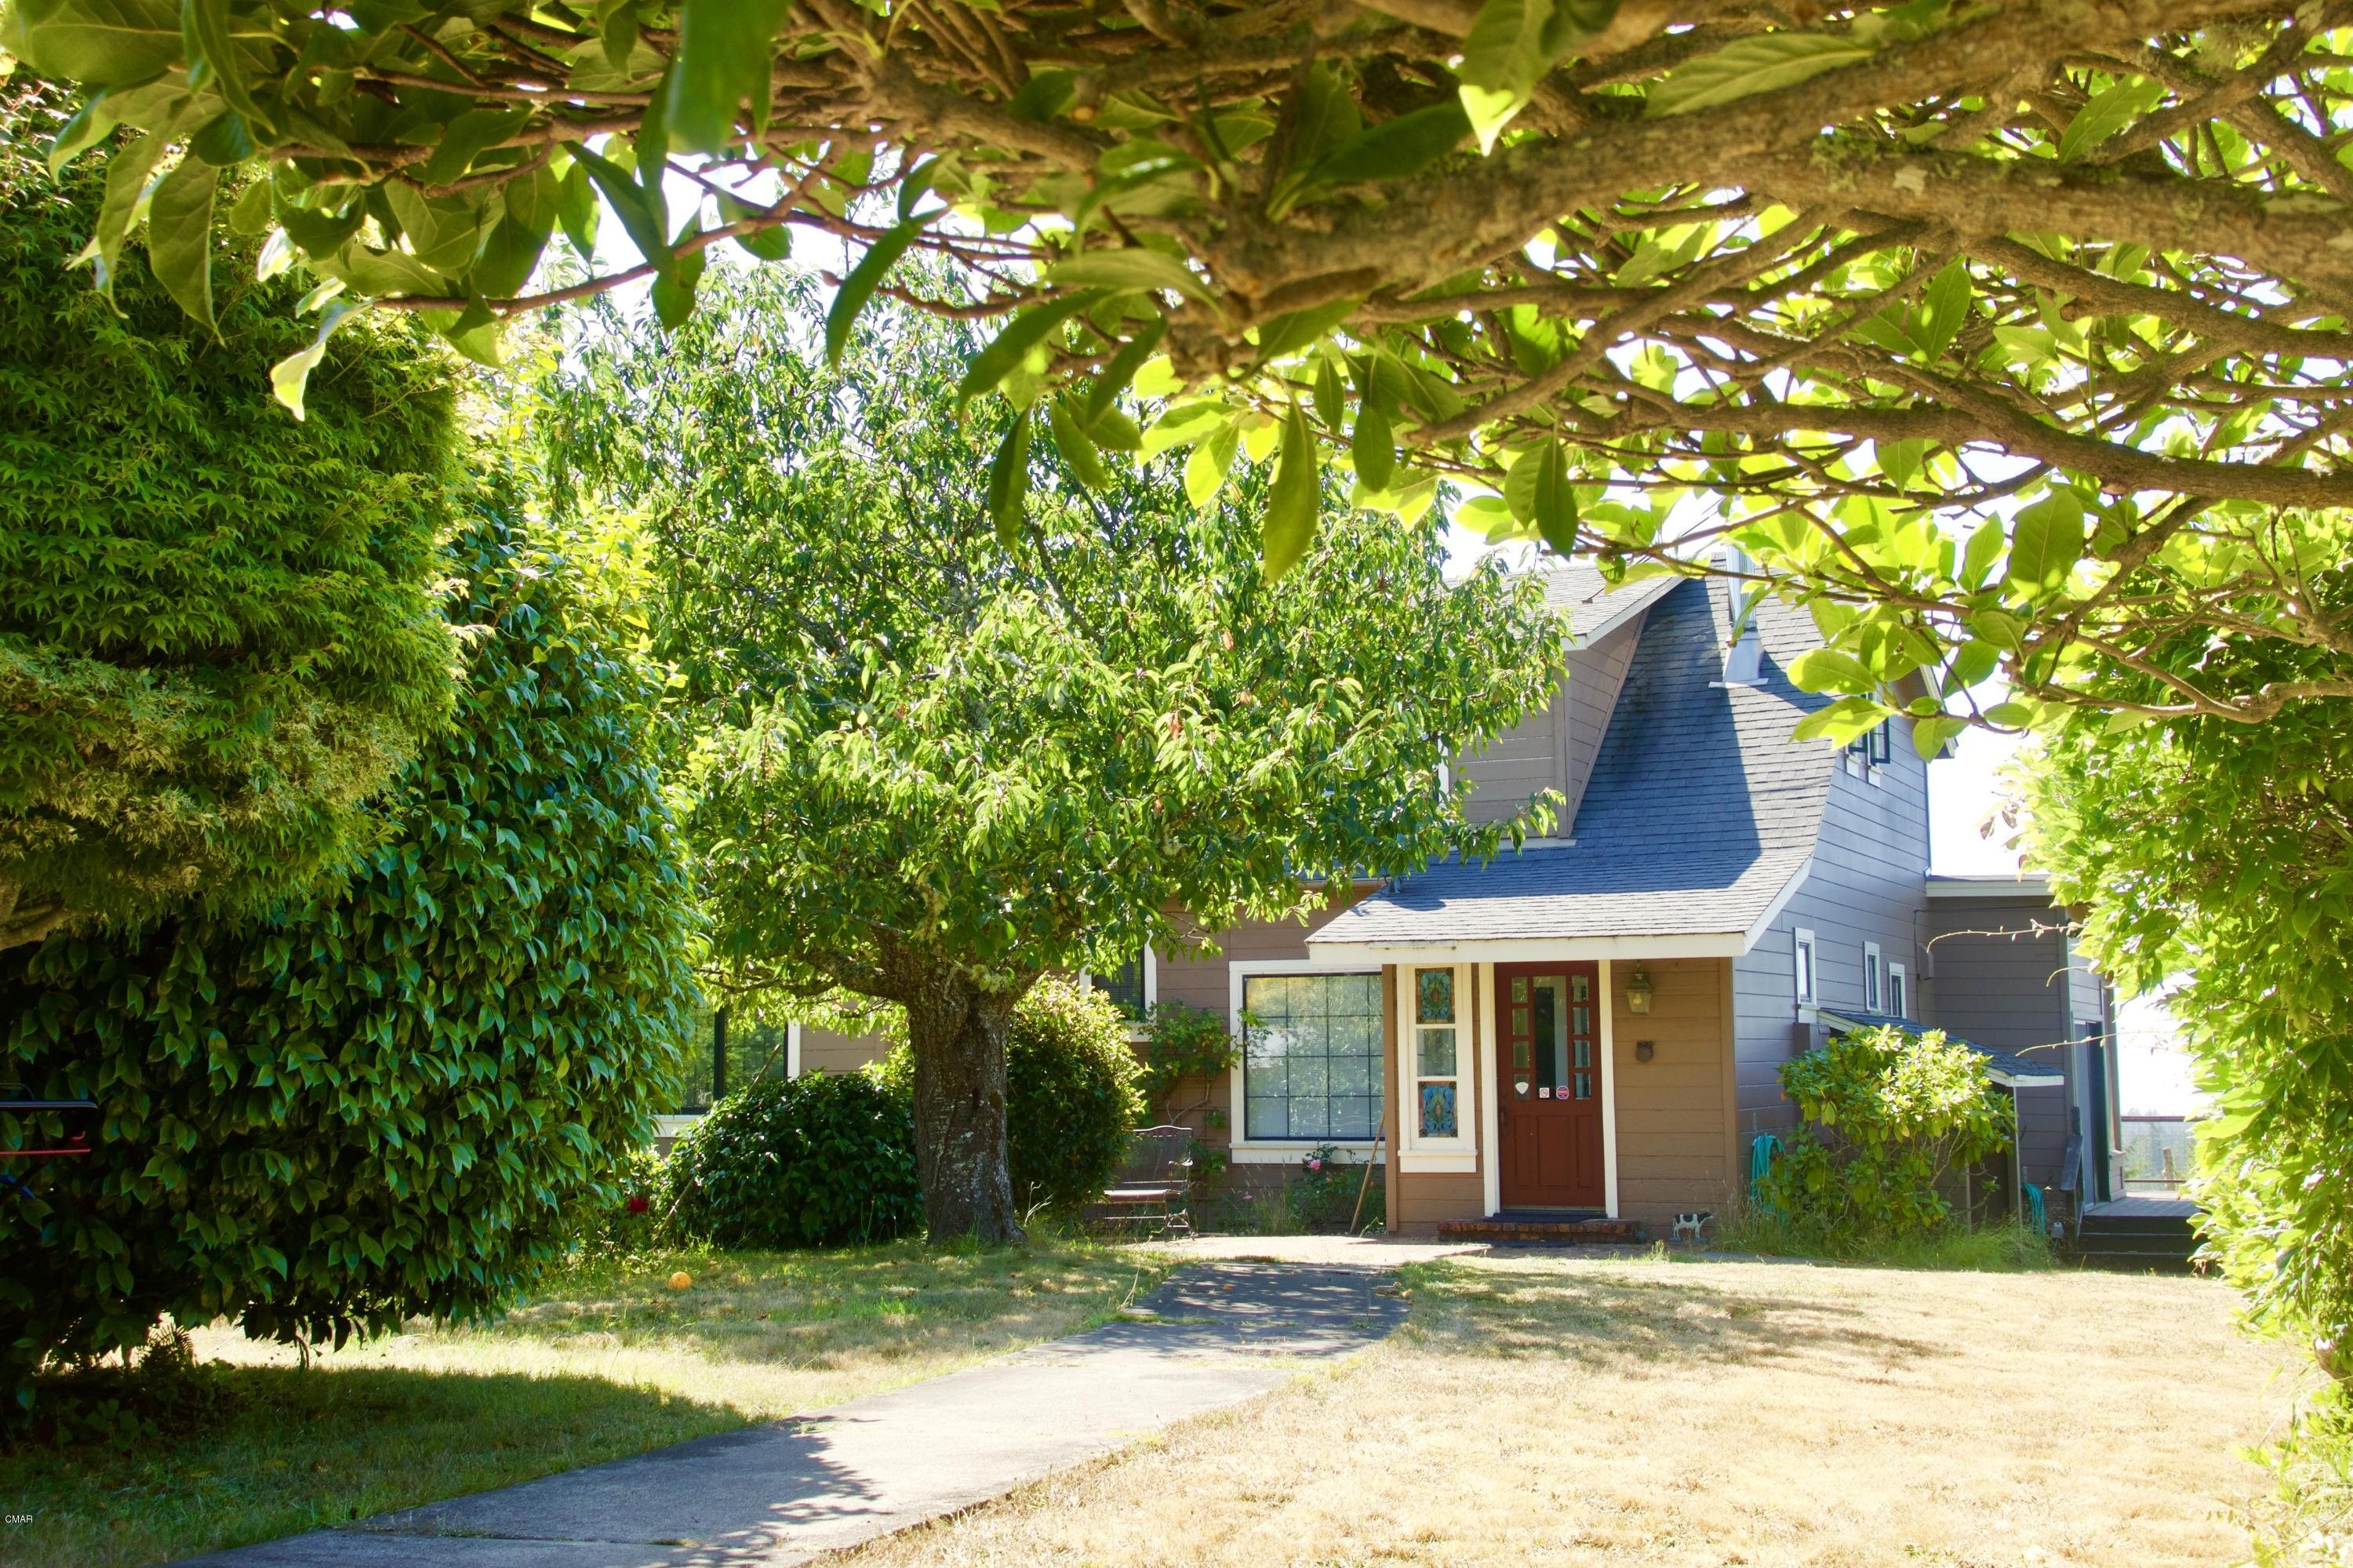 Simply amazing 40 acres of farmland, redwoods and 5 homes at the top of ''Sunshine Hill''. On a clear day views stretch all the way to the Pacific. The main home has a large kitchen with tons of storage and charm. Also a wraparound deck and sauna/hot tub room that you'll never want to leave. Each of the 4 other cottages has its own personality and are set apart for privacy. A large barn and several outbuildings offer so many uses- this could be the sustainable farm it once was, a family compound or a savvy rental income property. The iconic barn is awaiting some livestock, but currently being rented as storage space. Many varieties of fruit trees and abundant berries fill the lovely pastures. Come see Deer cottage, Meadow Cottage, Quail Cottage and Garden Cottage and prepare to fall in lov